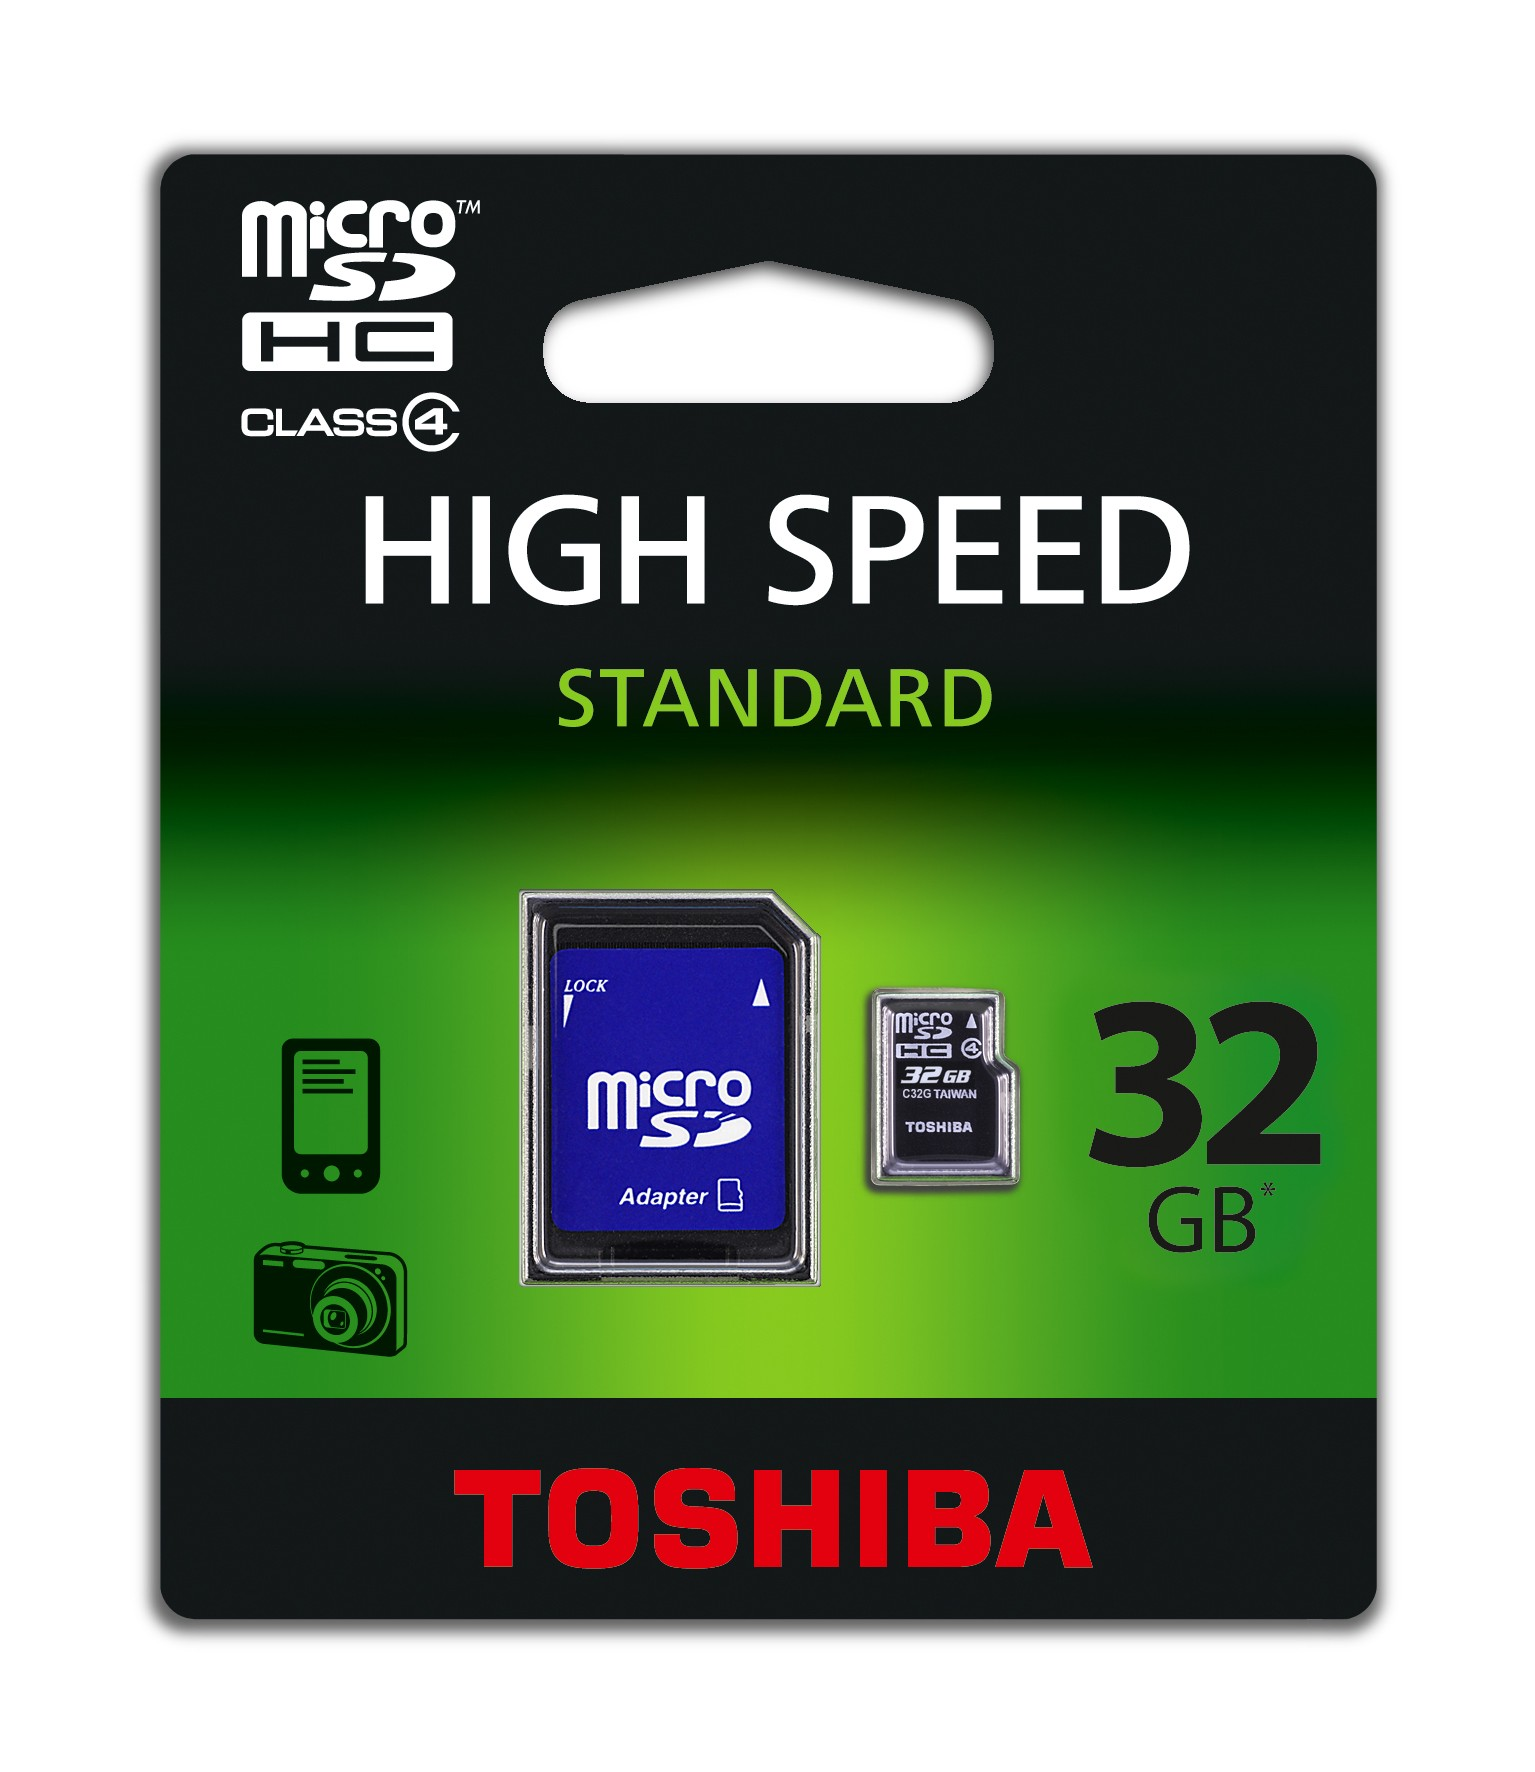 Toshiba microSD<br> Memory Card 32GB +<br>Adapter